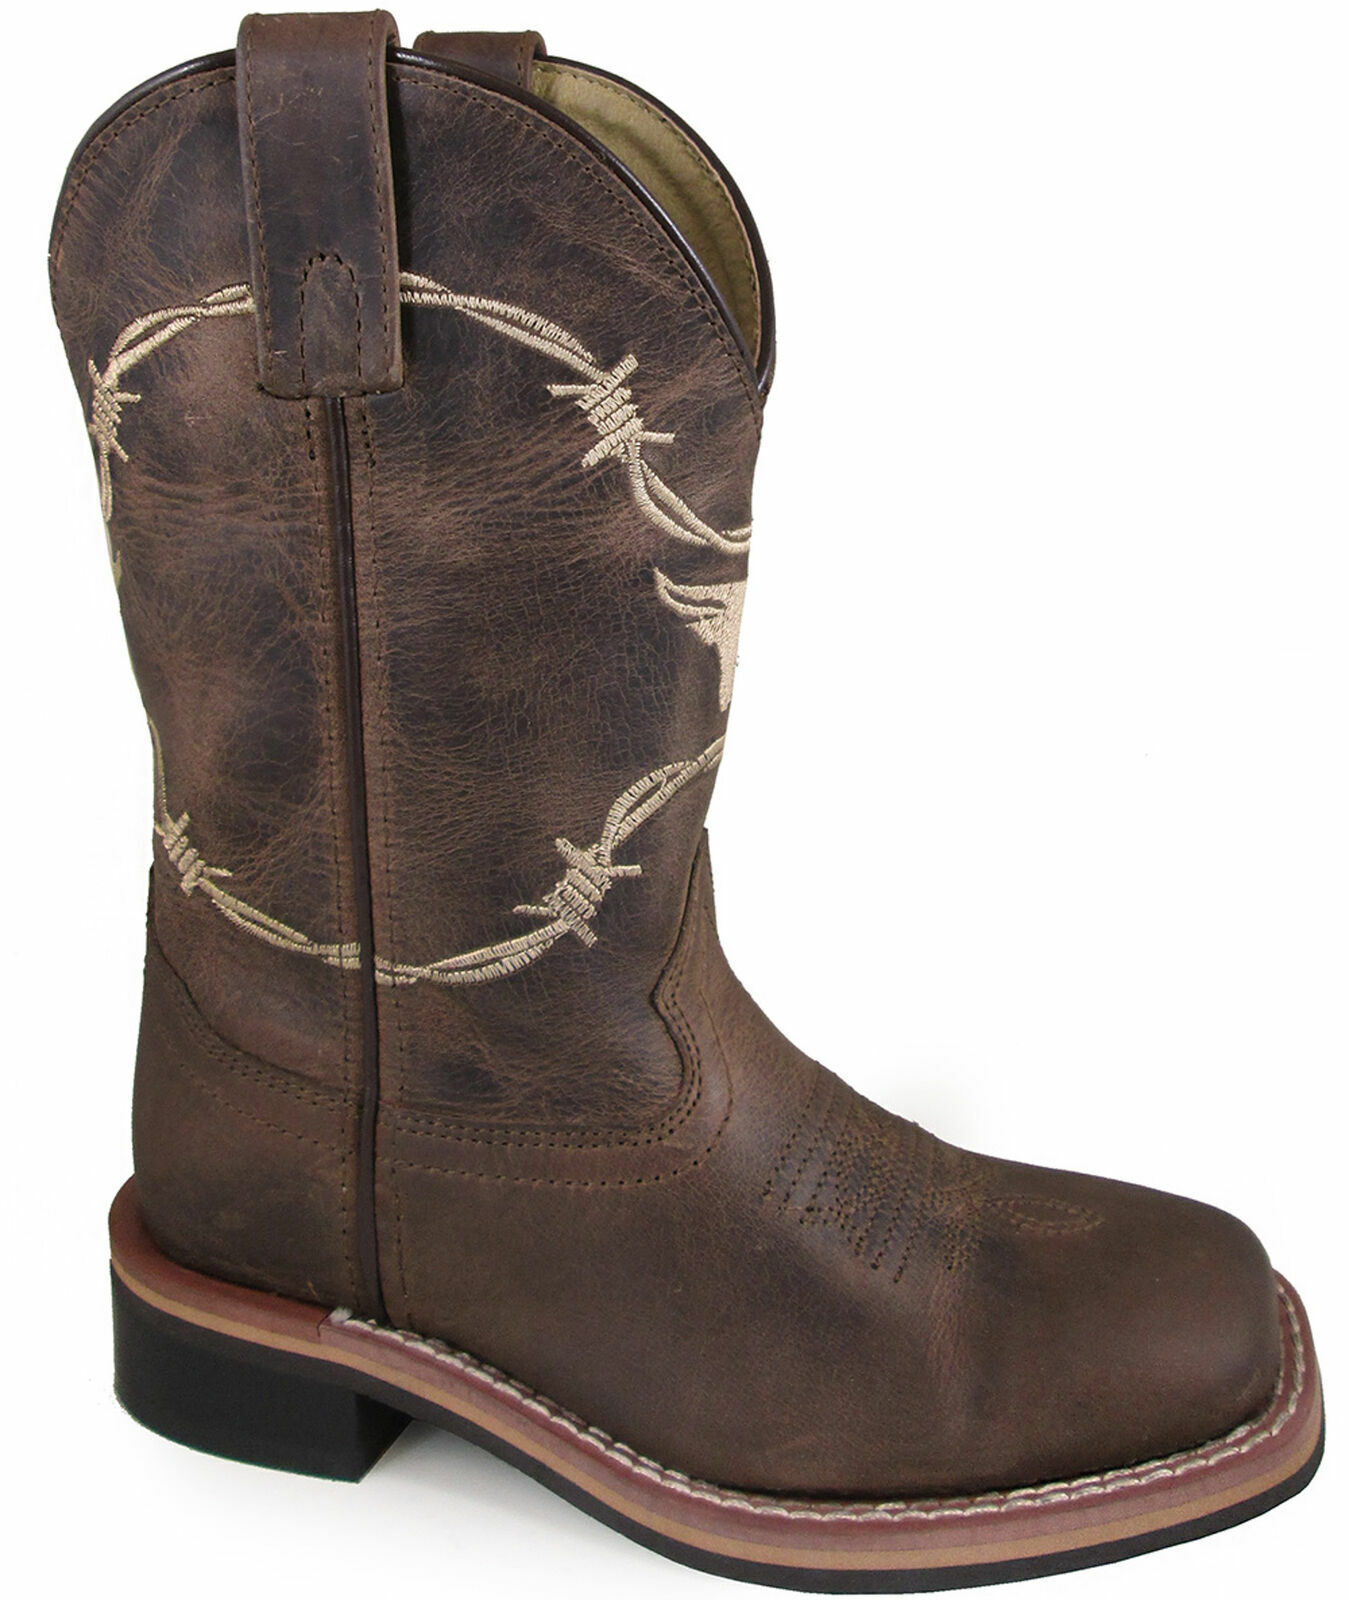 Smoky Mountain Childrens Boys Logan Waxed Brown Leather Cowboy Boots 3923C